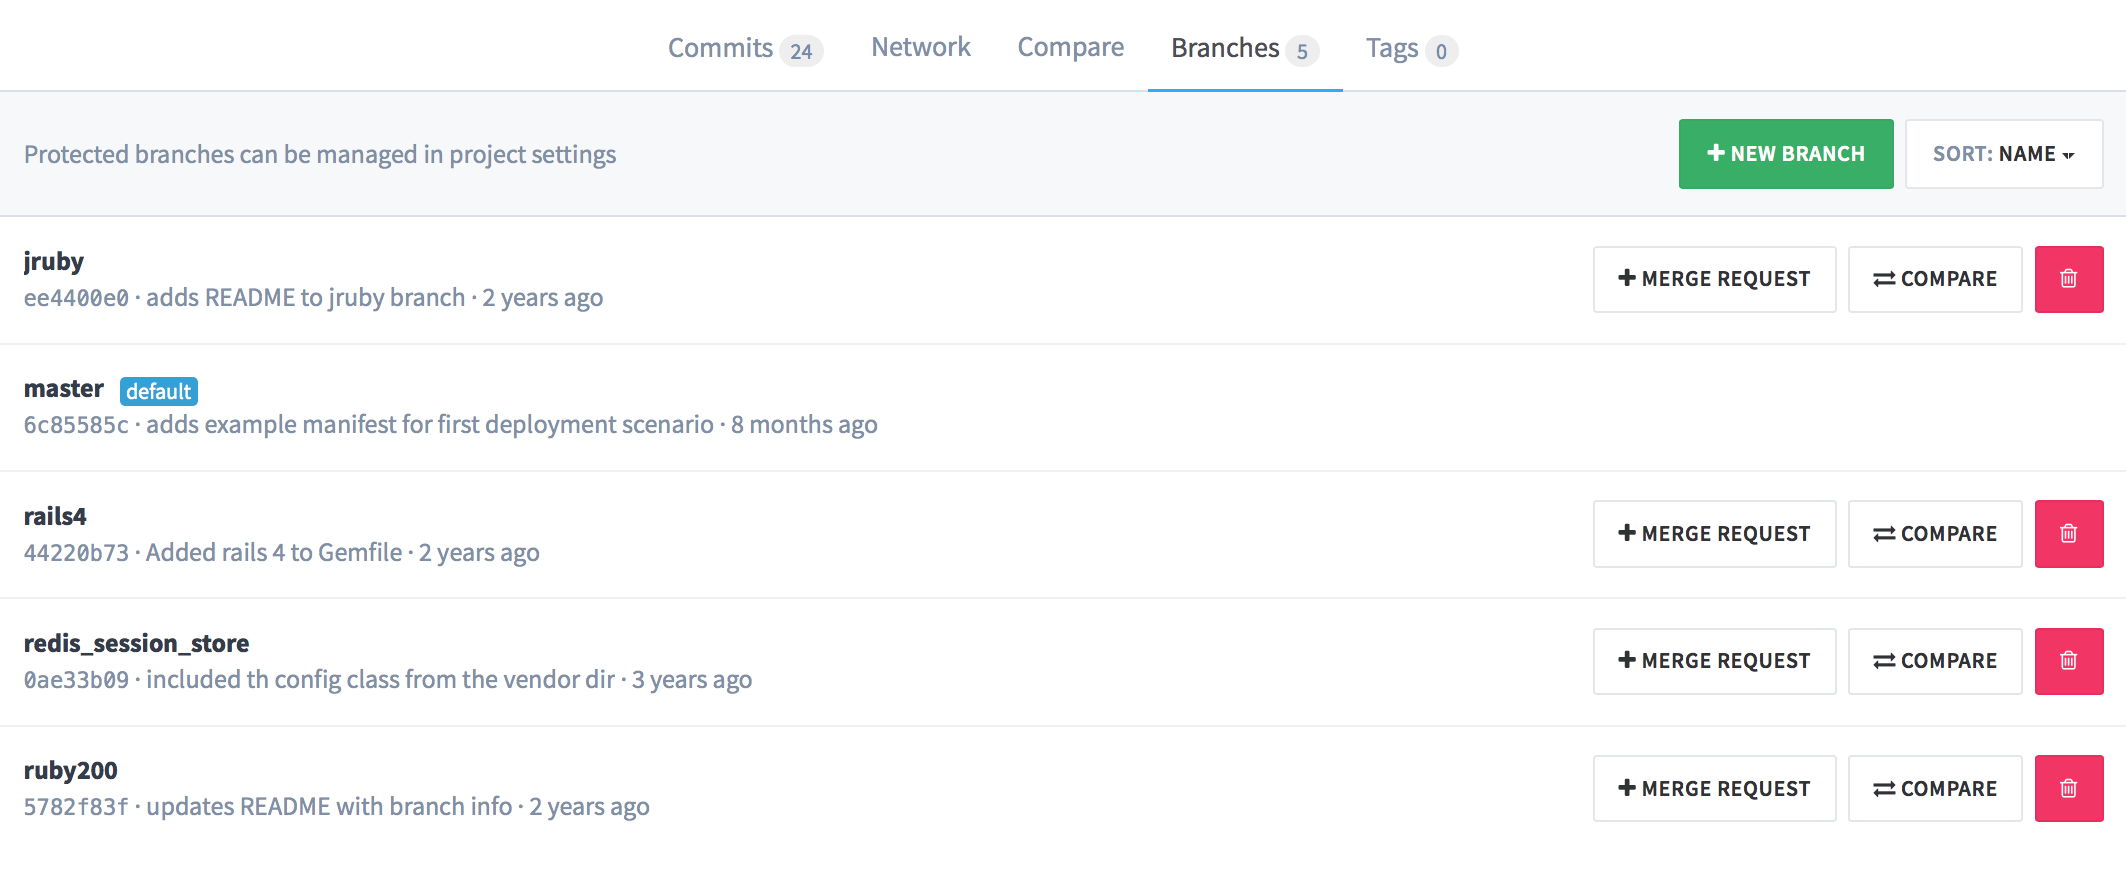 anynines_gitlab_commits_branches